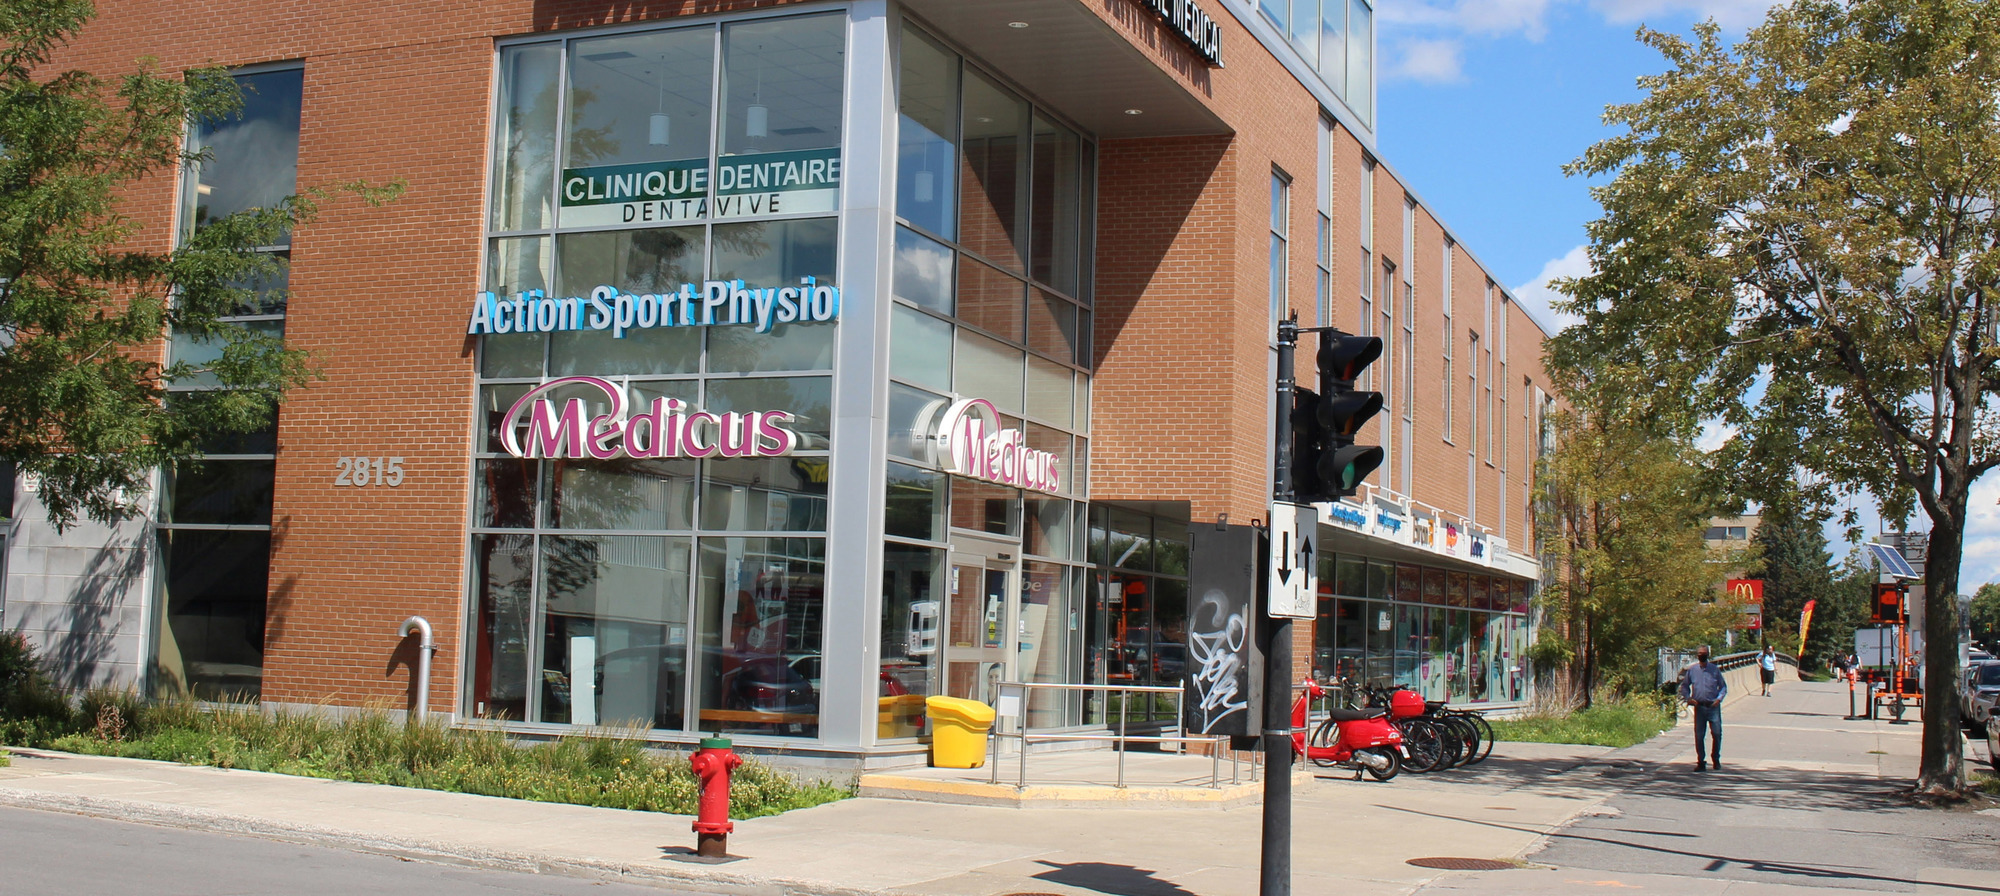 Photo de la clinique de Physiothérapie Action Sport Physio Maisonneuve Rosemont